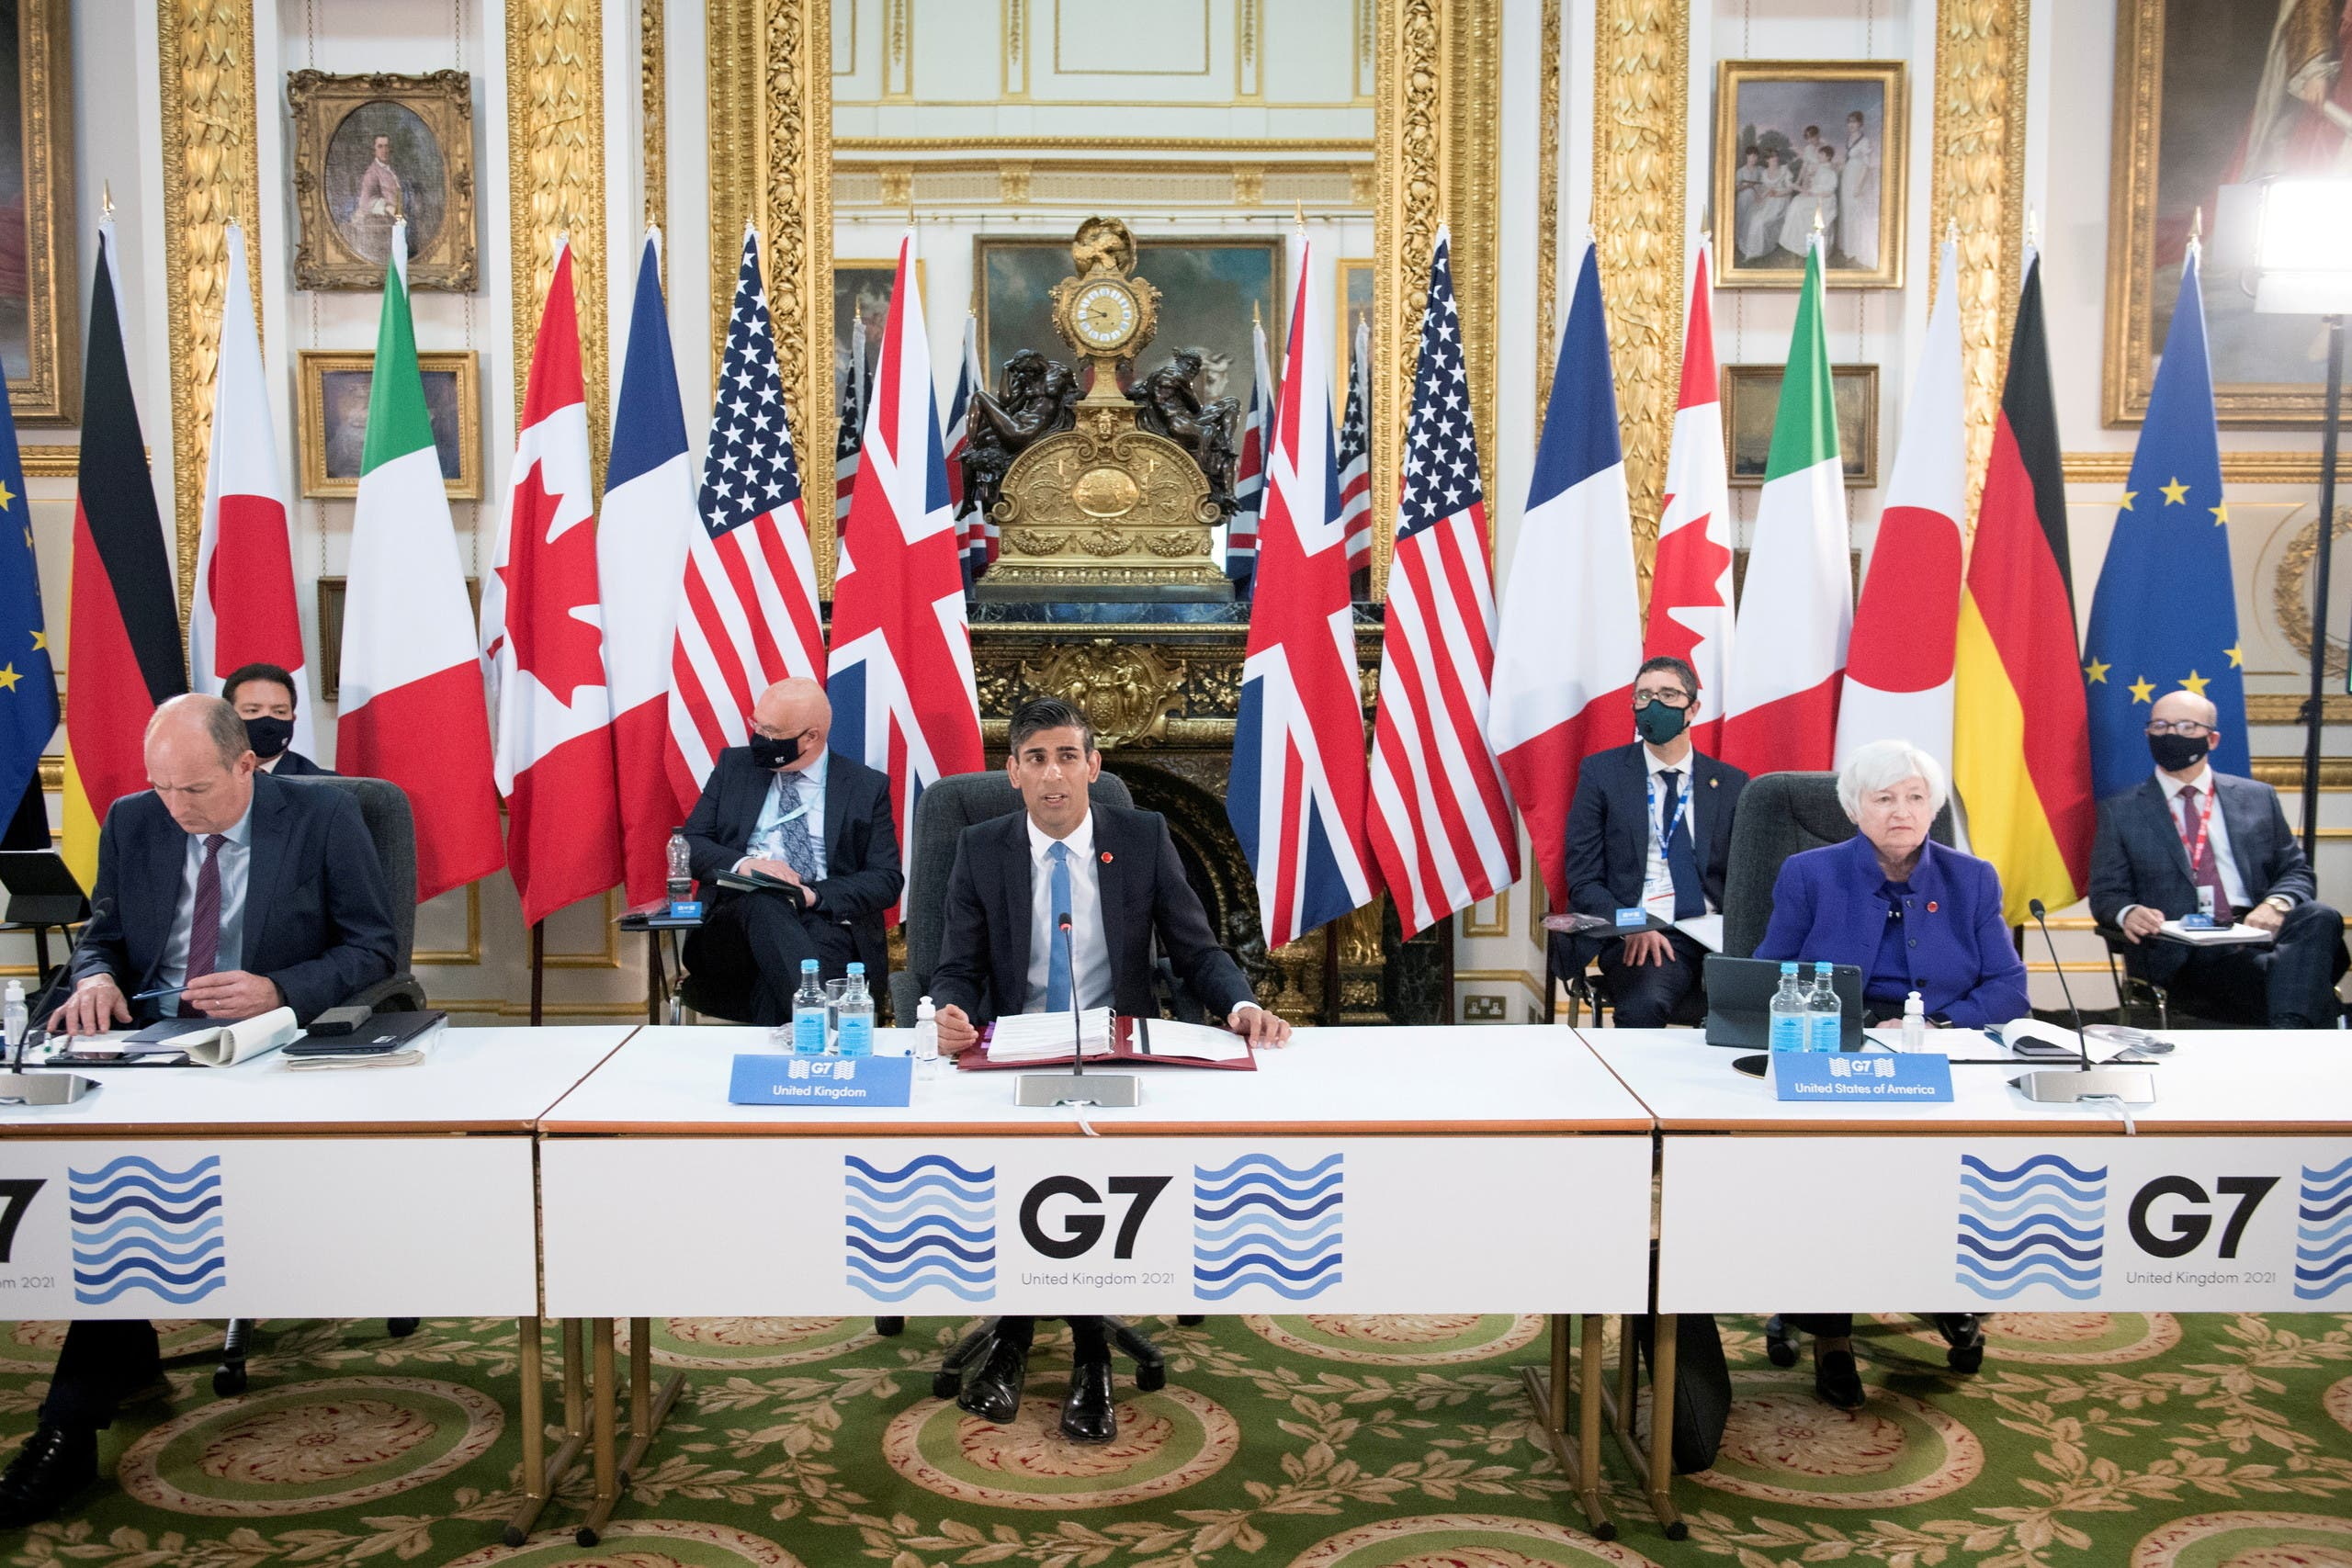 Britain's Chancellor of the Exchequer Rishi Sunak speaks at a meeting of finance ministers from across the G7 nations ahead of the G7 leaders' summit, at Lancaster House in London, Britain June 4, 2021. (File photo: Reuters)